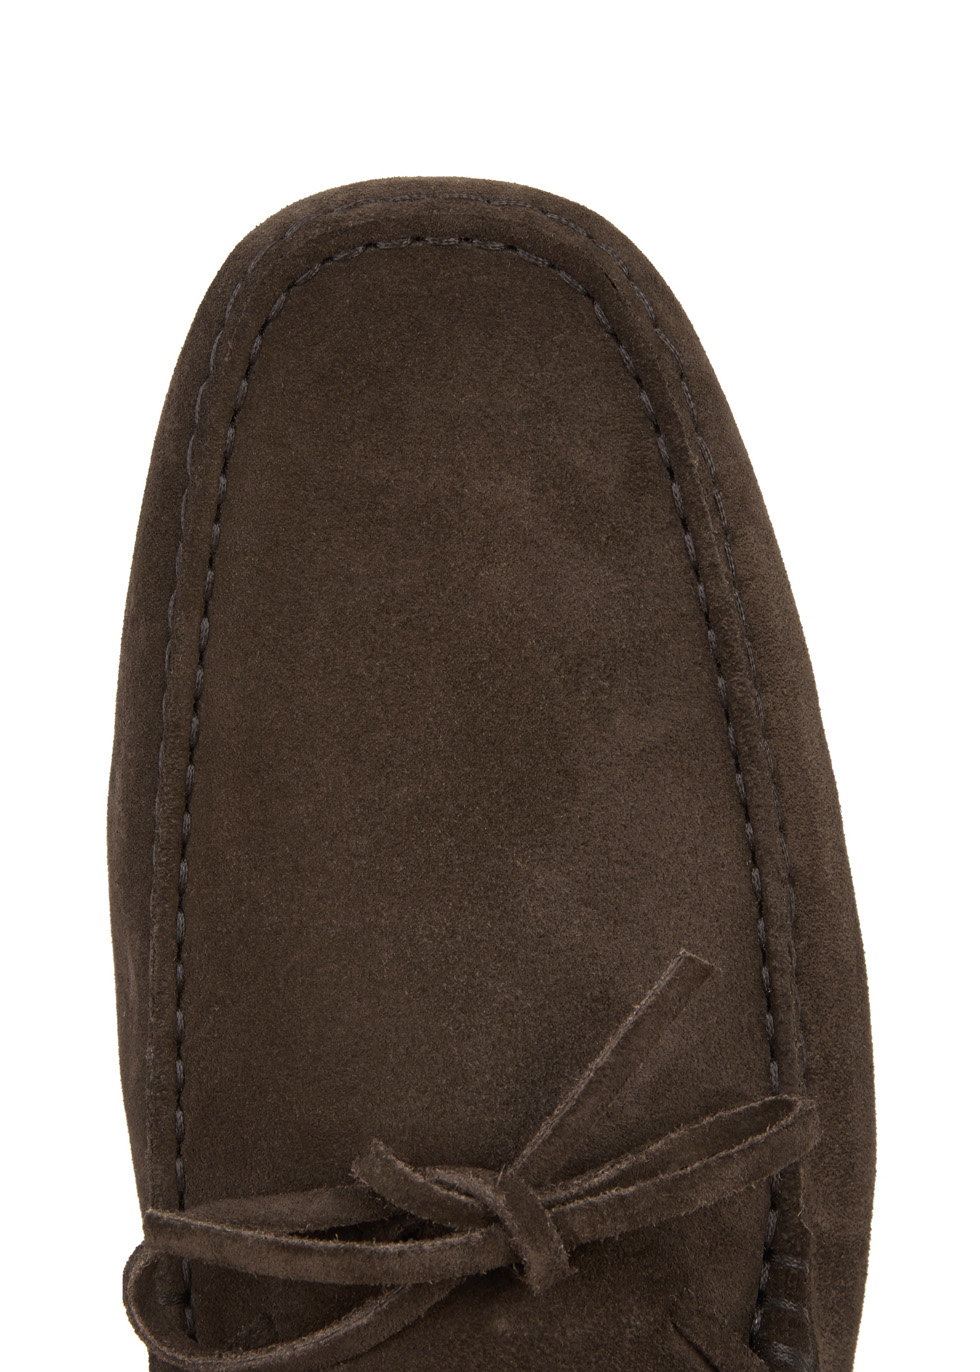 Gommino brown suede driving shoes - Tod's